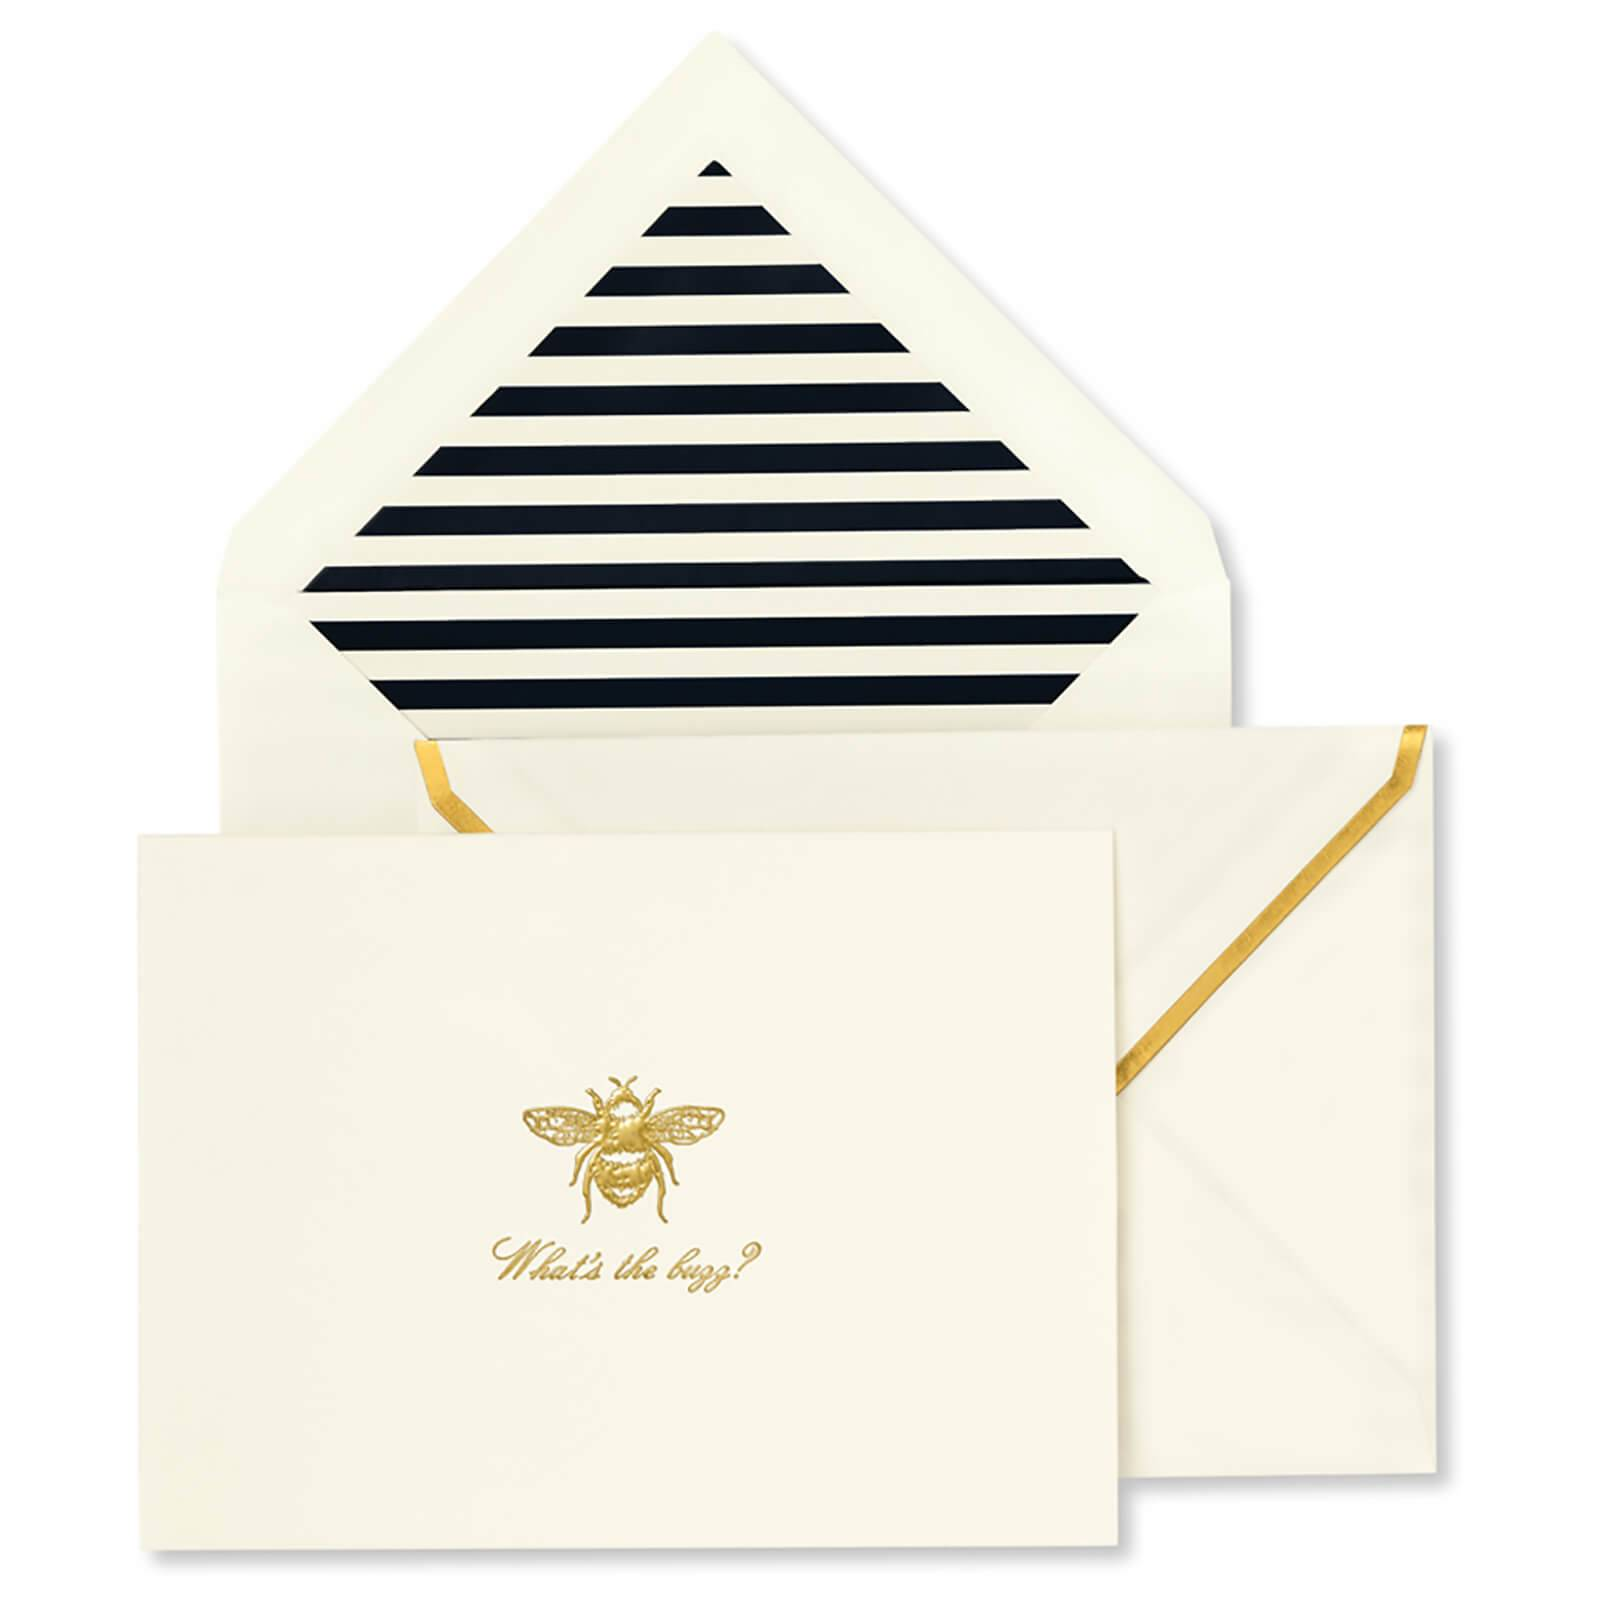 Kate Spade New York Kate Spade Notecard Set - What's The Buzz?